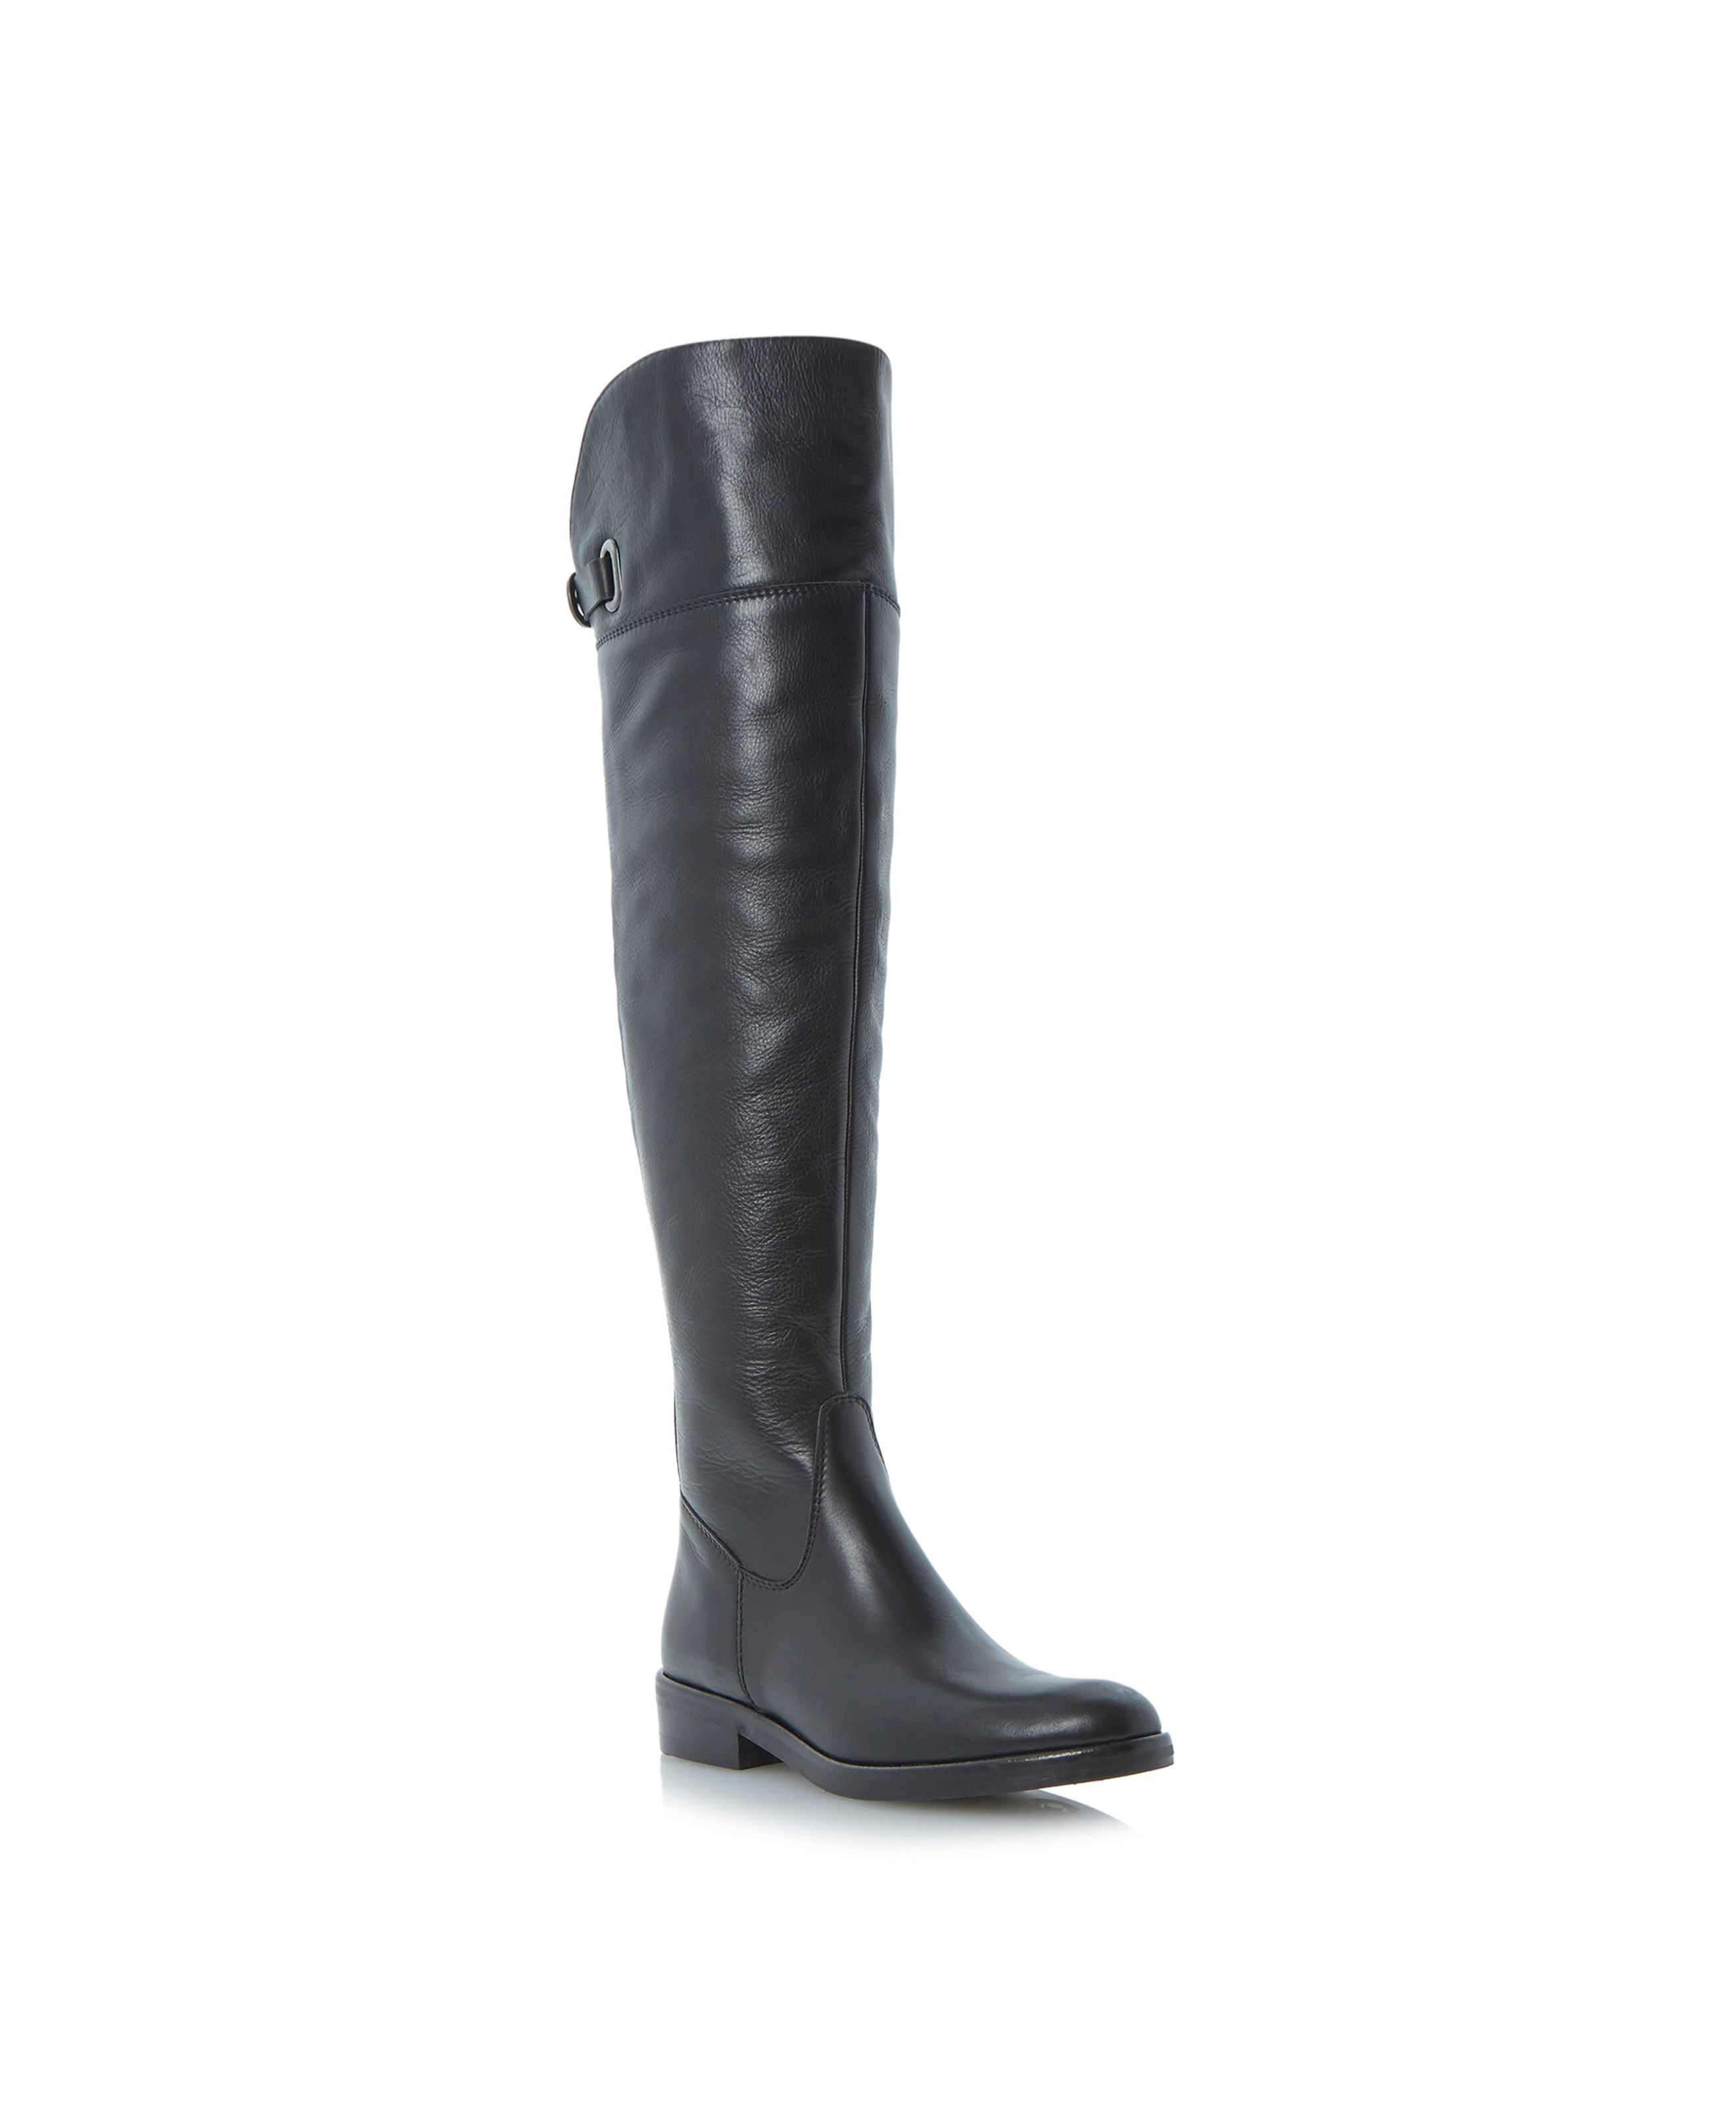 Trinnie over knee boots